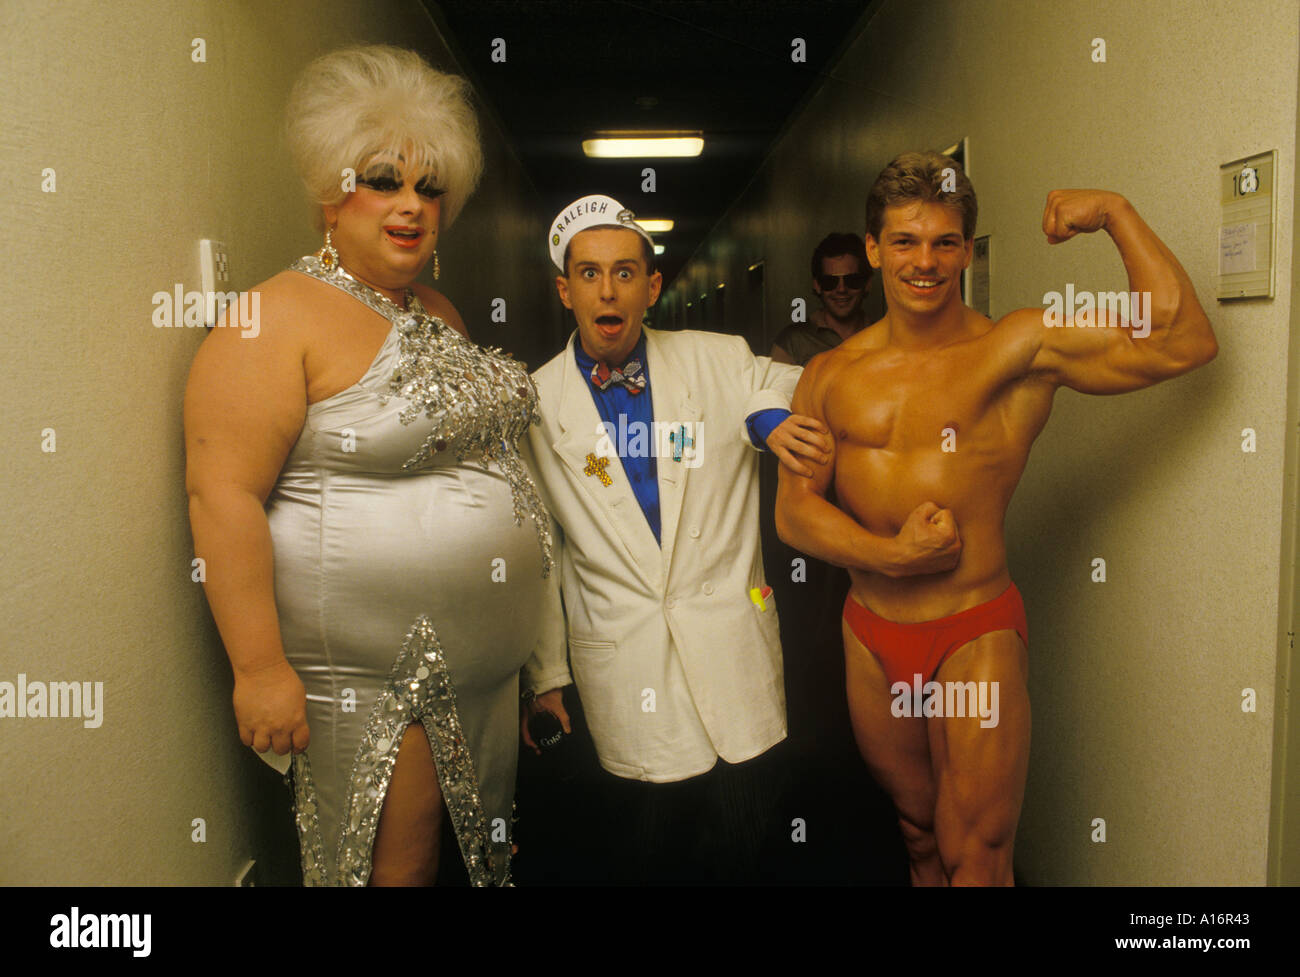 Holly Johnson lead singer with Frankie Goes to Hollywood  singer Divine in Germany on tour  Circa 1985 1980s HOMER SYKES - Stock Image